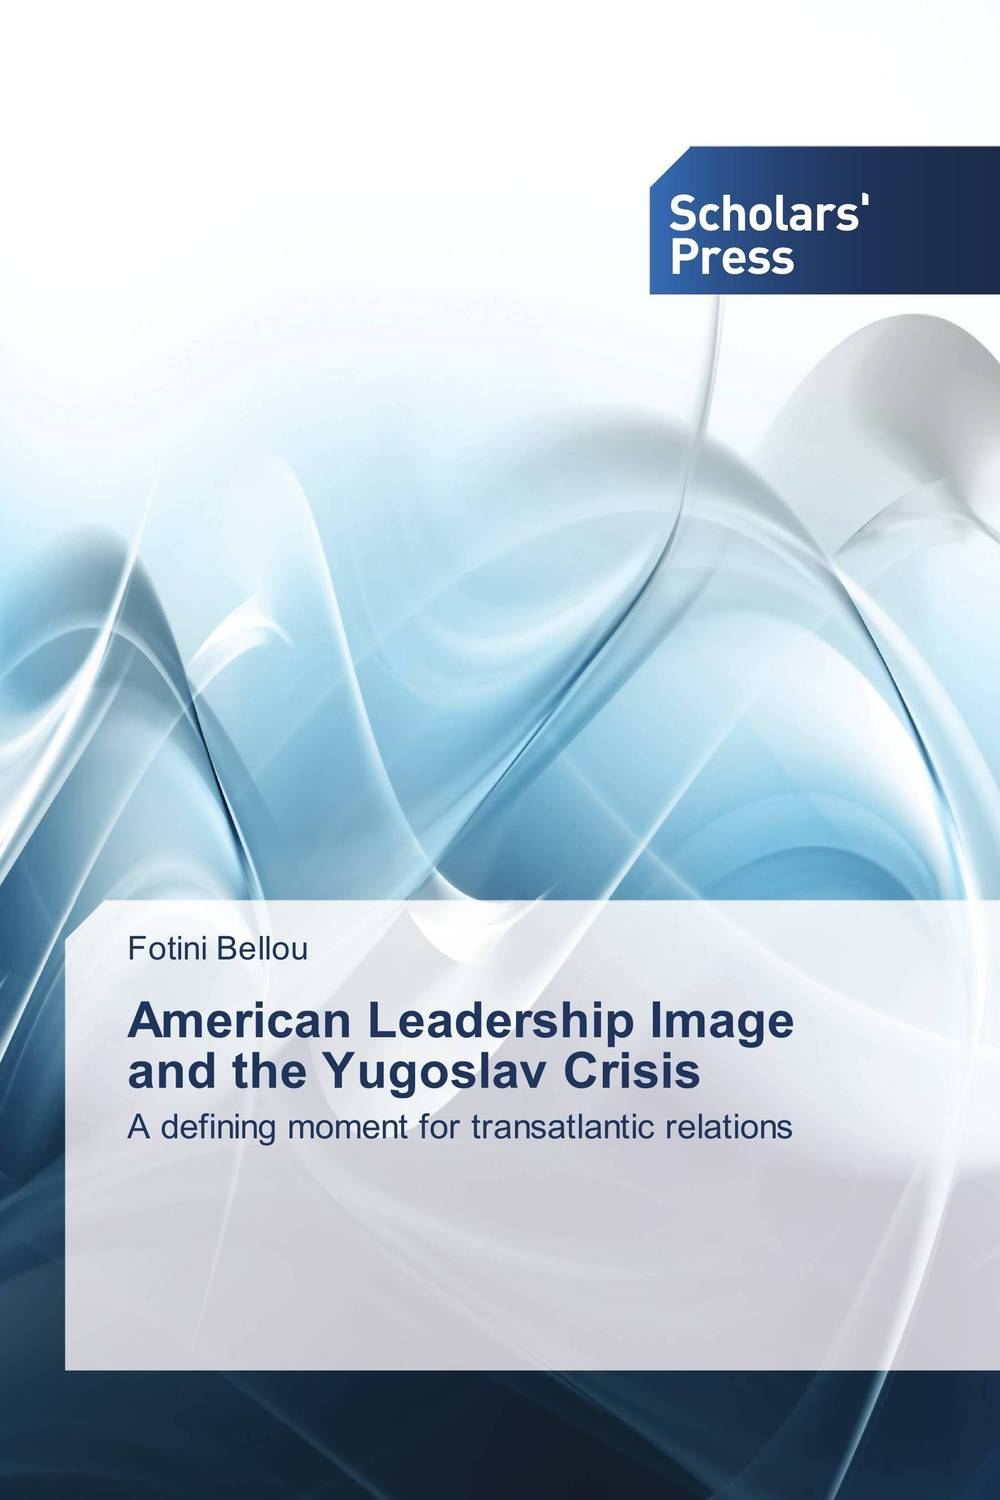 American Leadership Image and the Yugoslav Crisis w craig reed the 7 secrets of neuron leadership what top military commanders neuroscientists and the ancient greeks teach us about inspiring teams